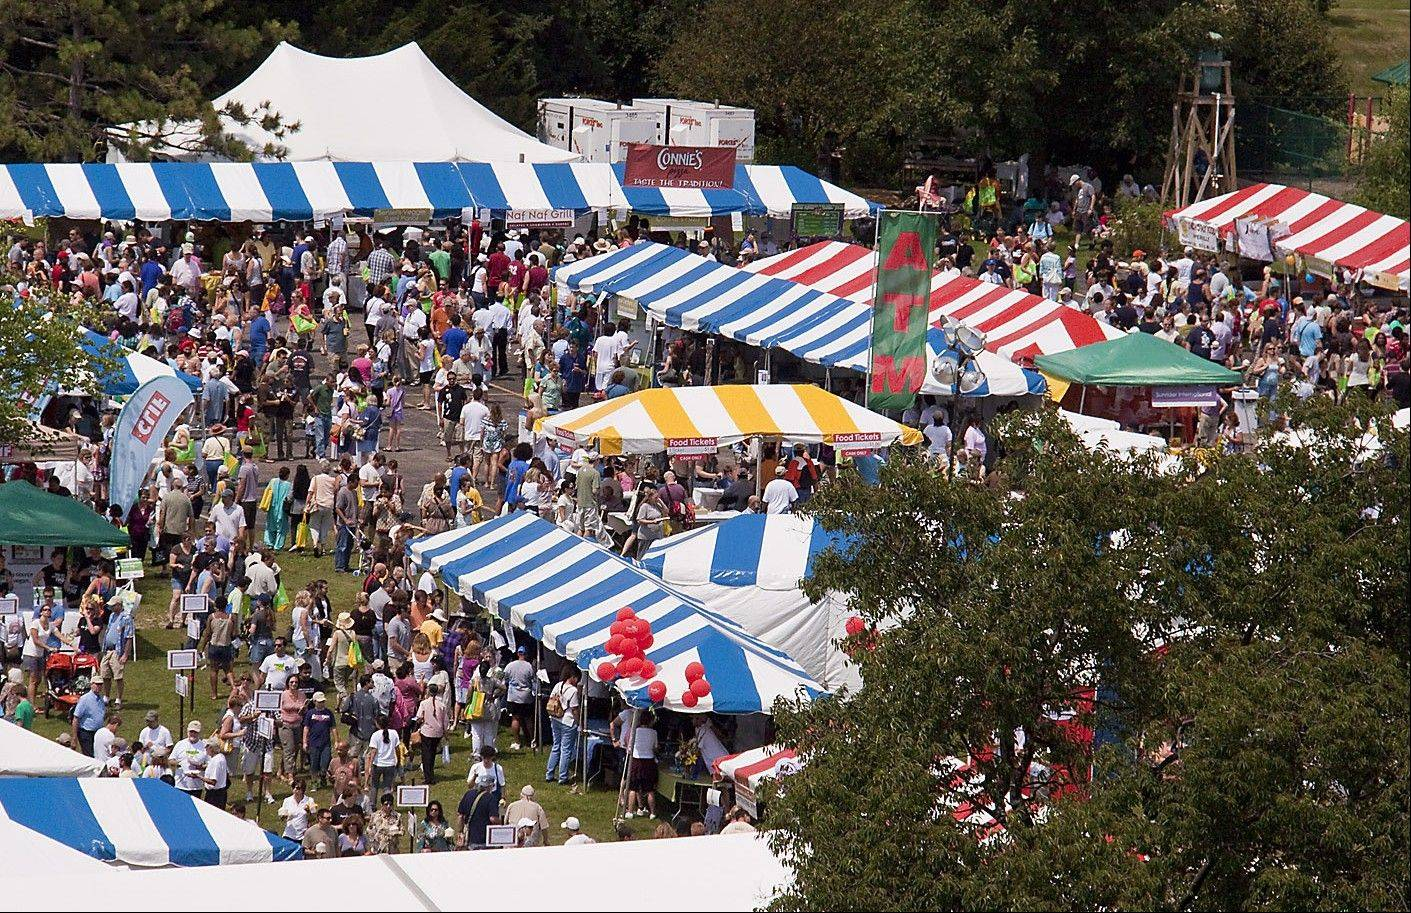 Veggie Fest in Naperville spotlights health, spiritual benefits of vegetarianism